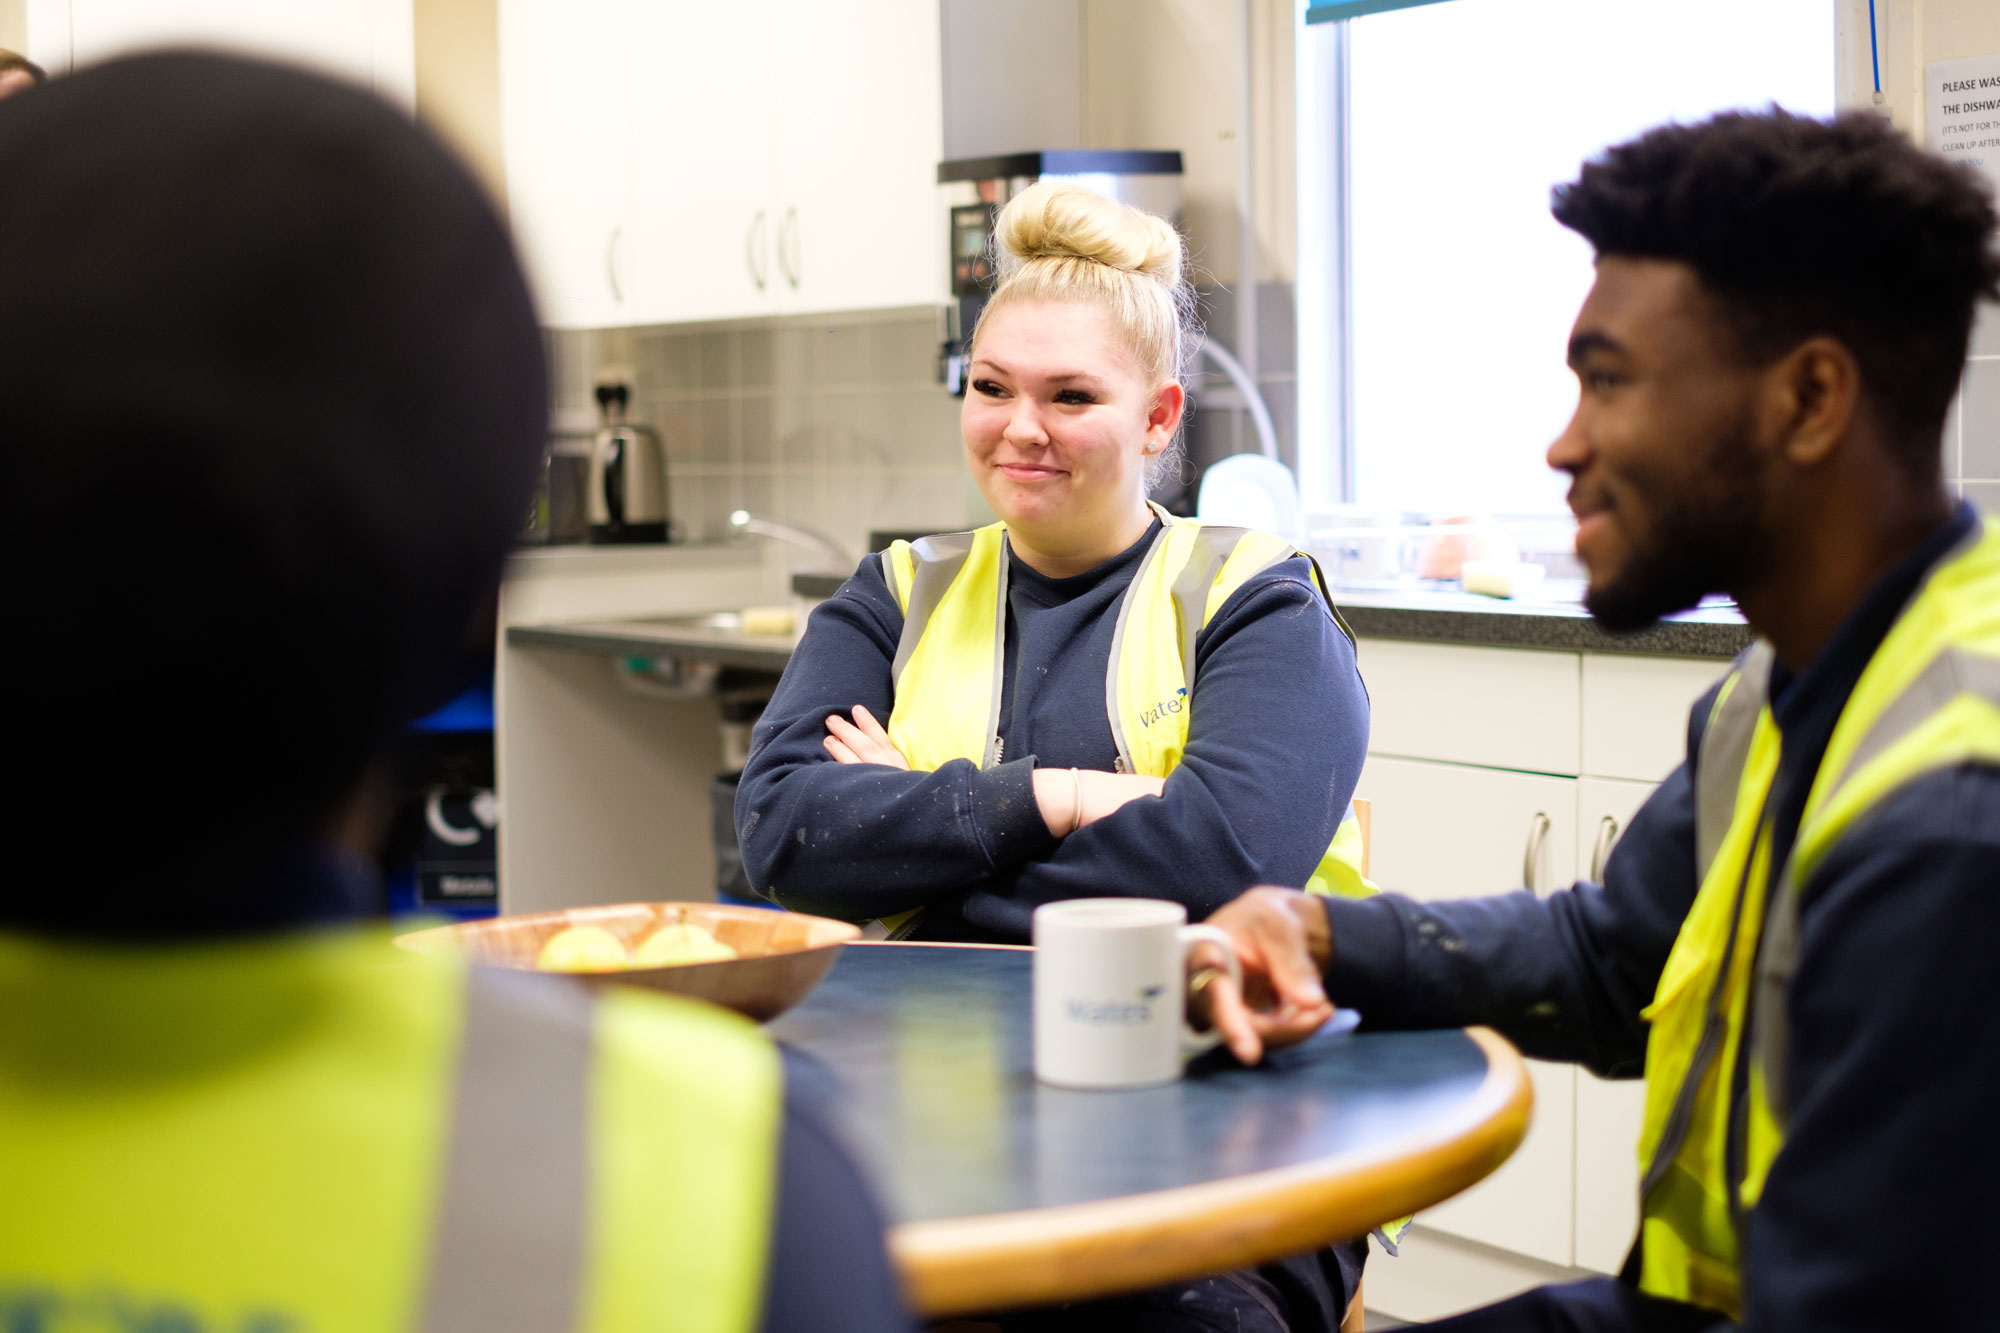 Register your interest in an apprenticeship with Wates